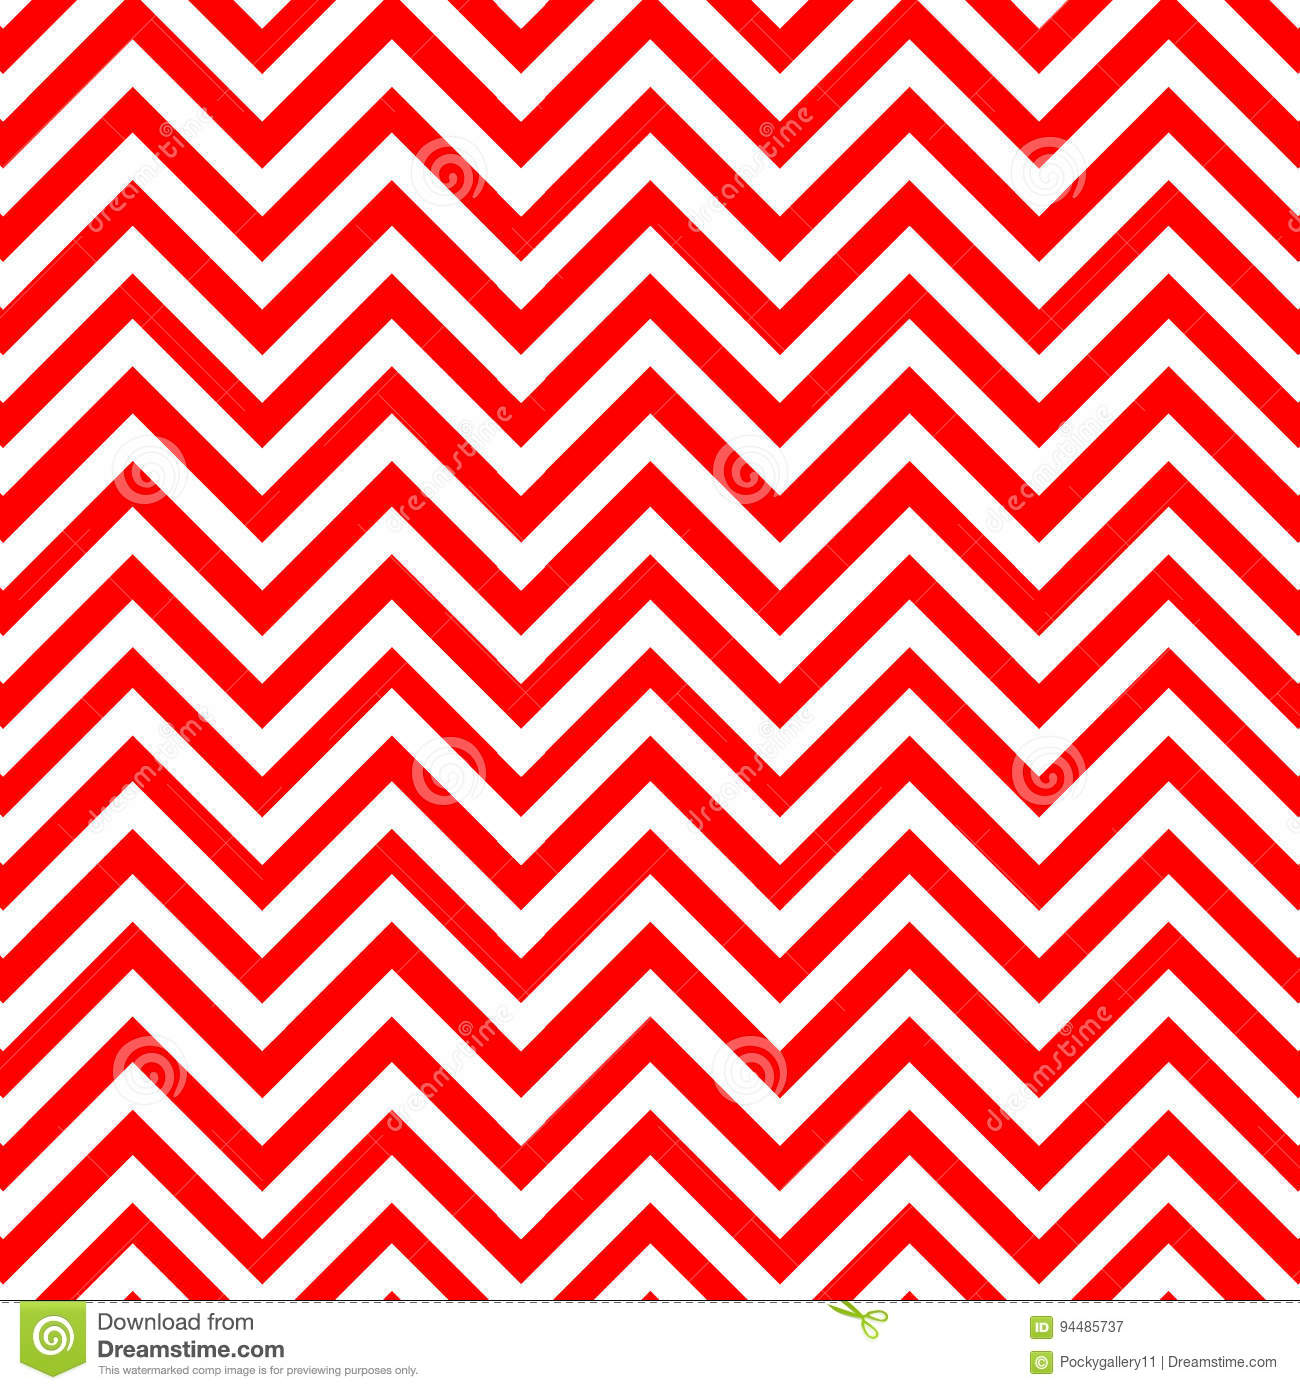 red and white chevron pattern stock illustration